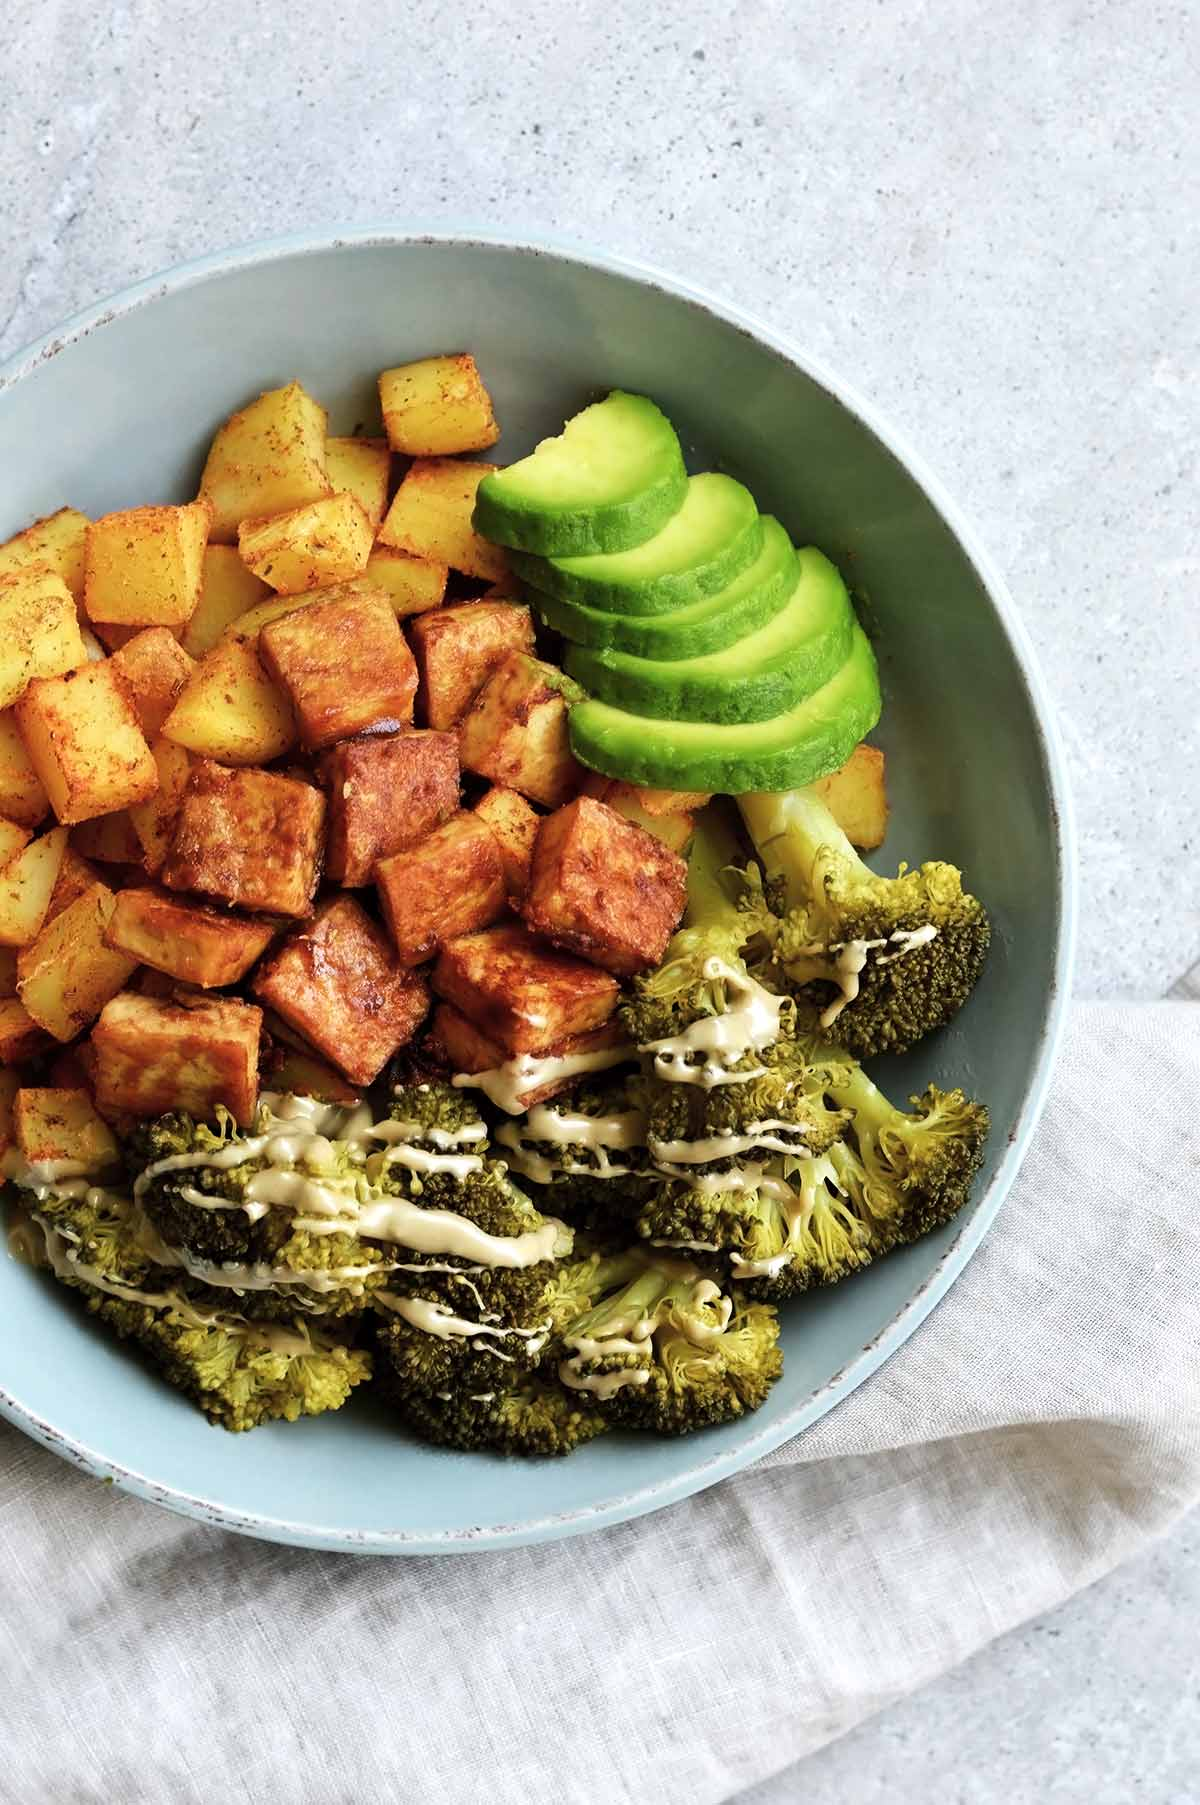 oil-free fried tofu with veggies and potatoes